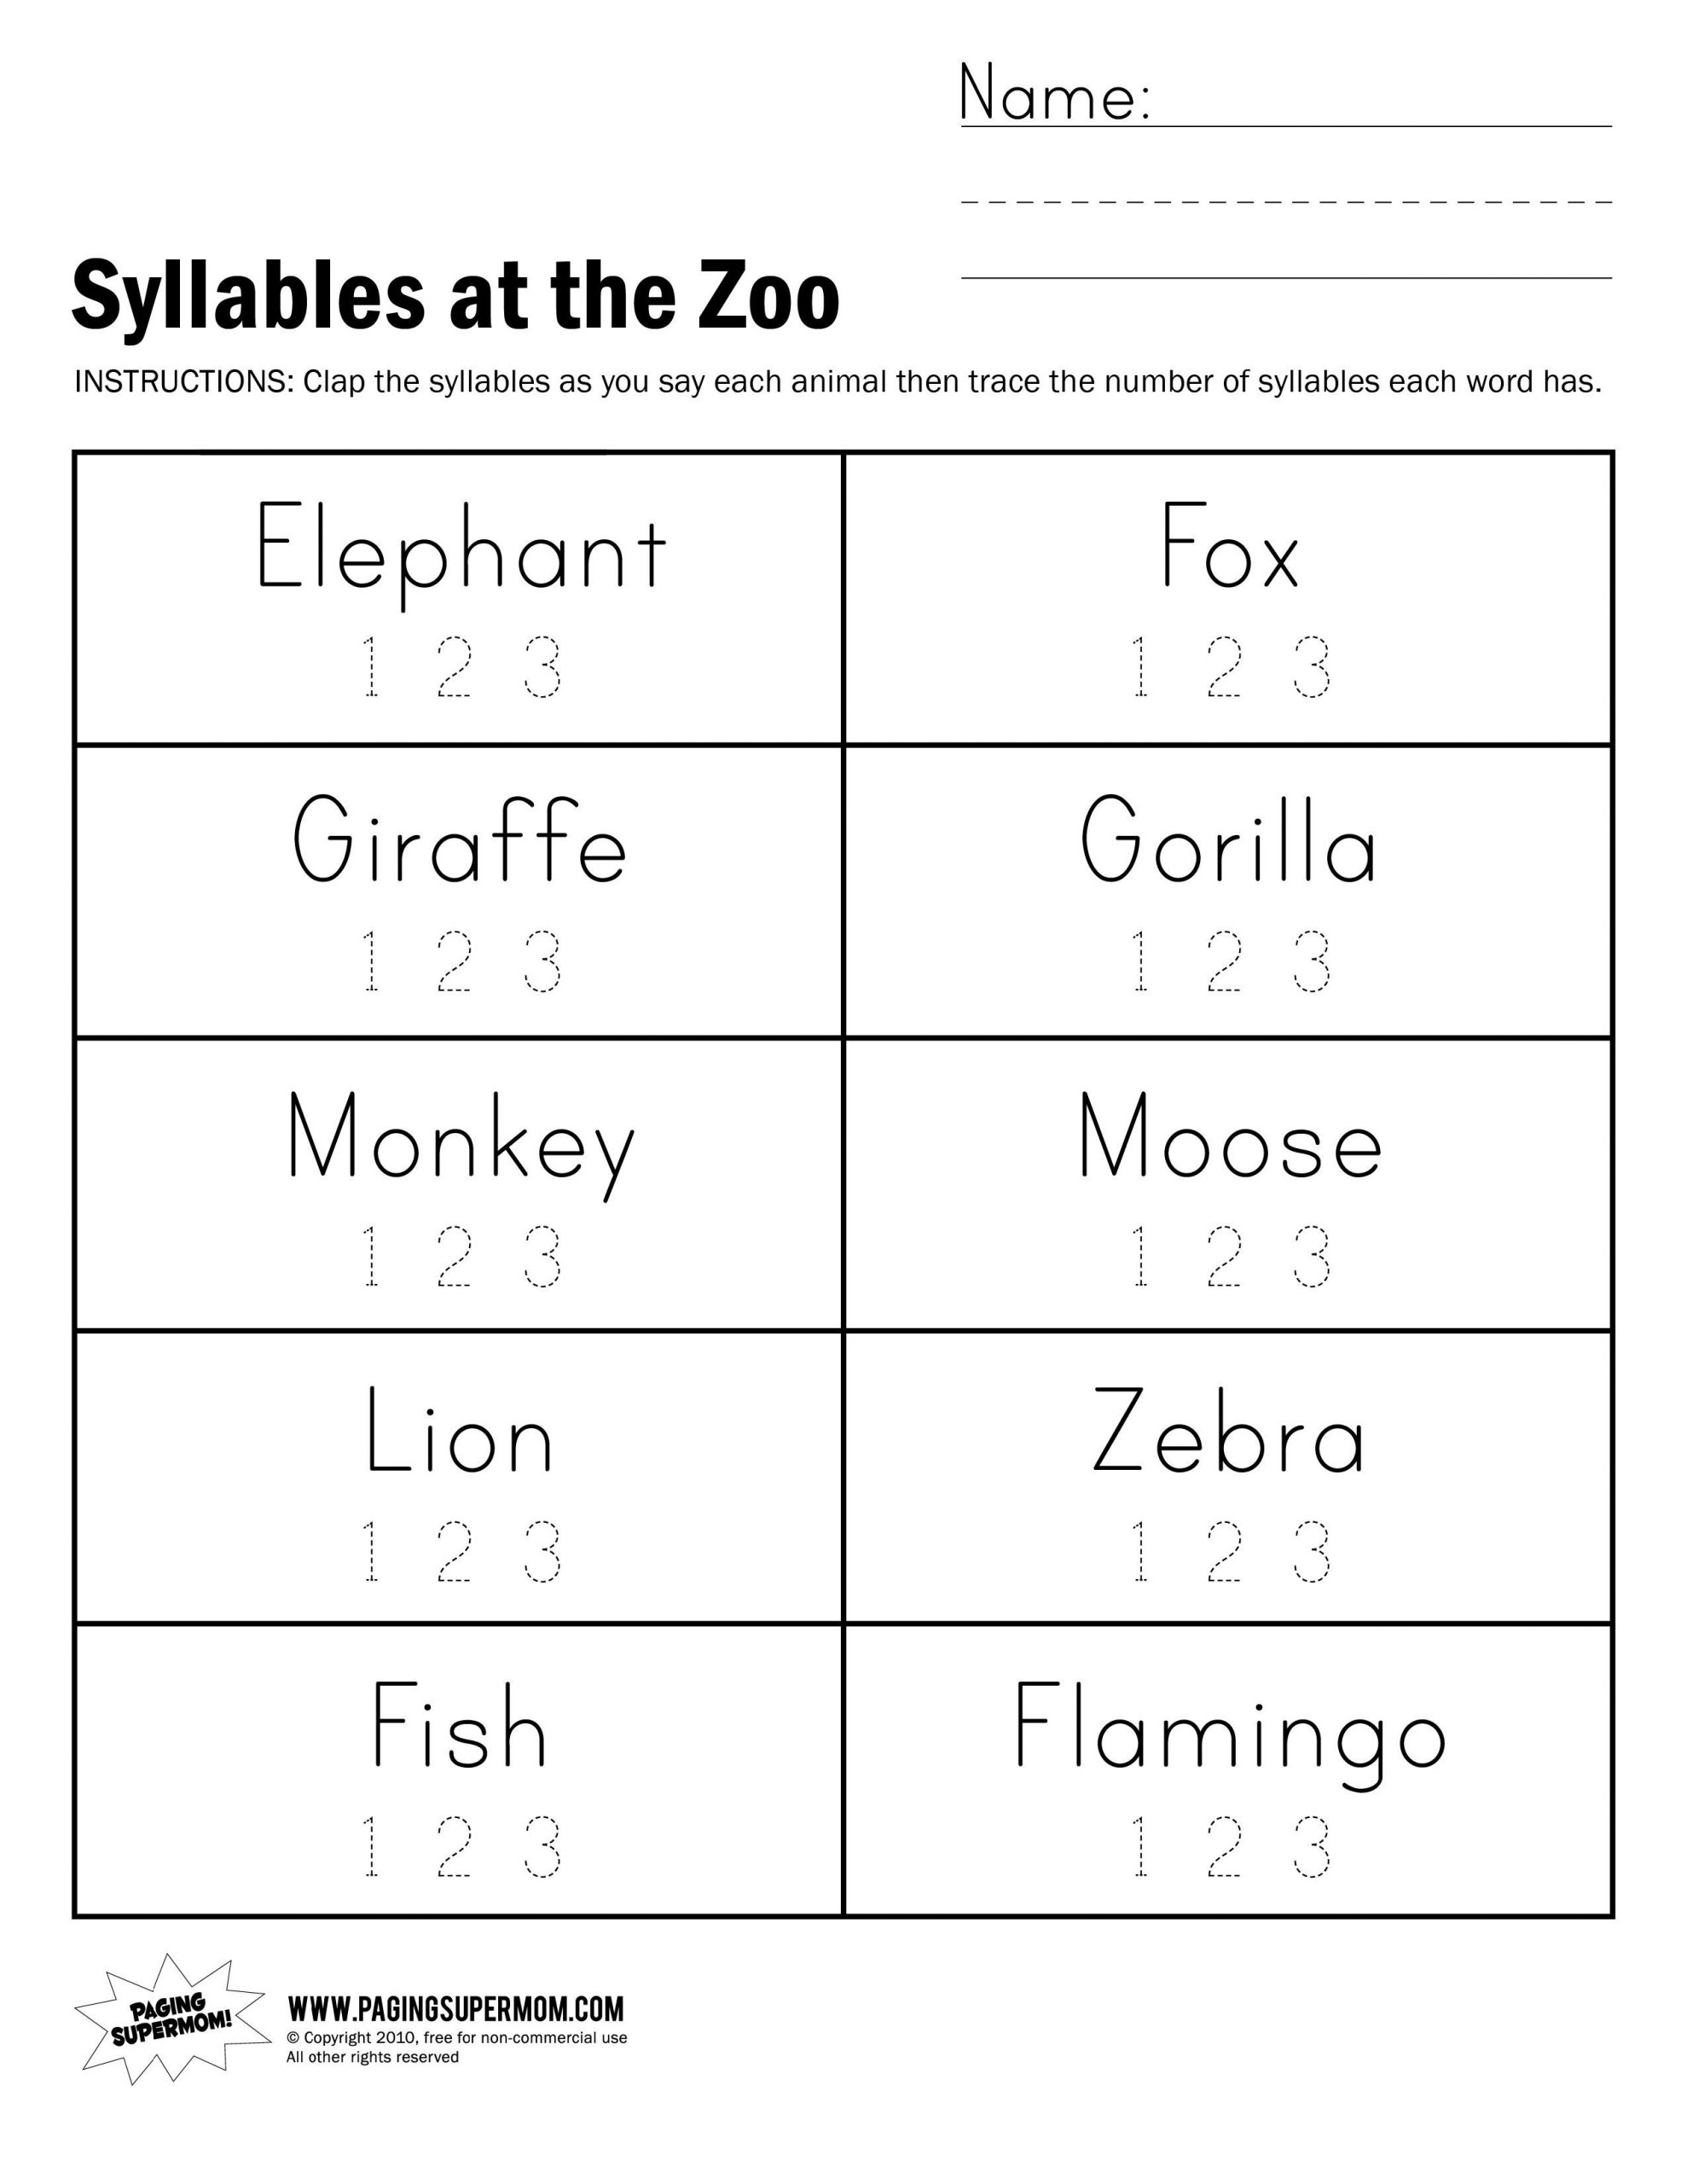 Syllables Worksheet for Kindergarten Syllables at the Zoo Worksheet